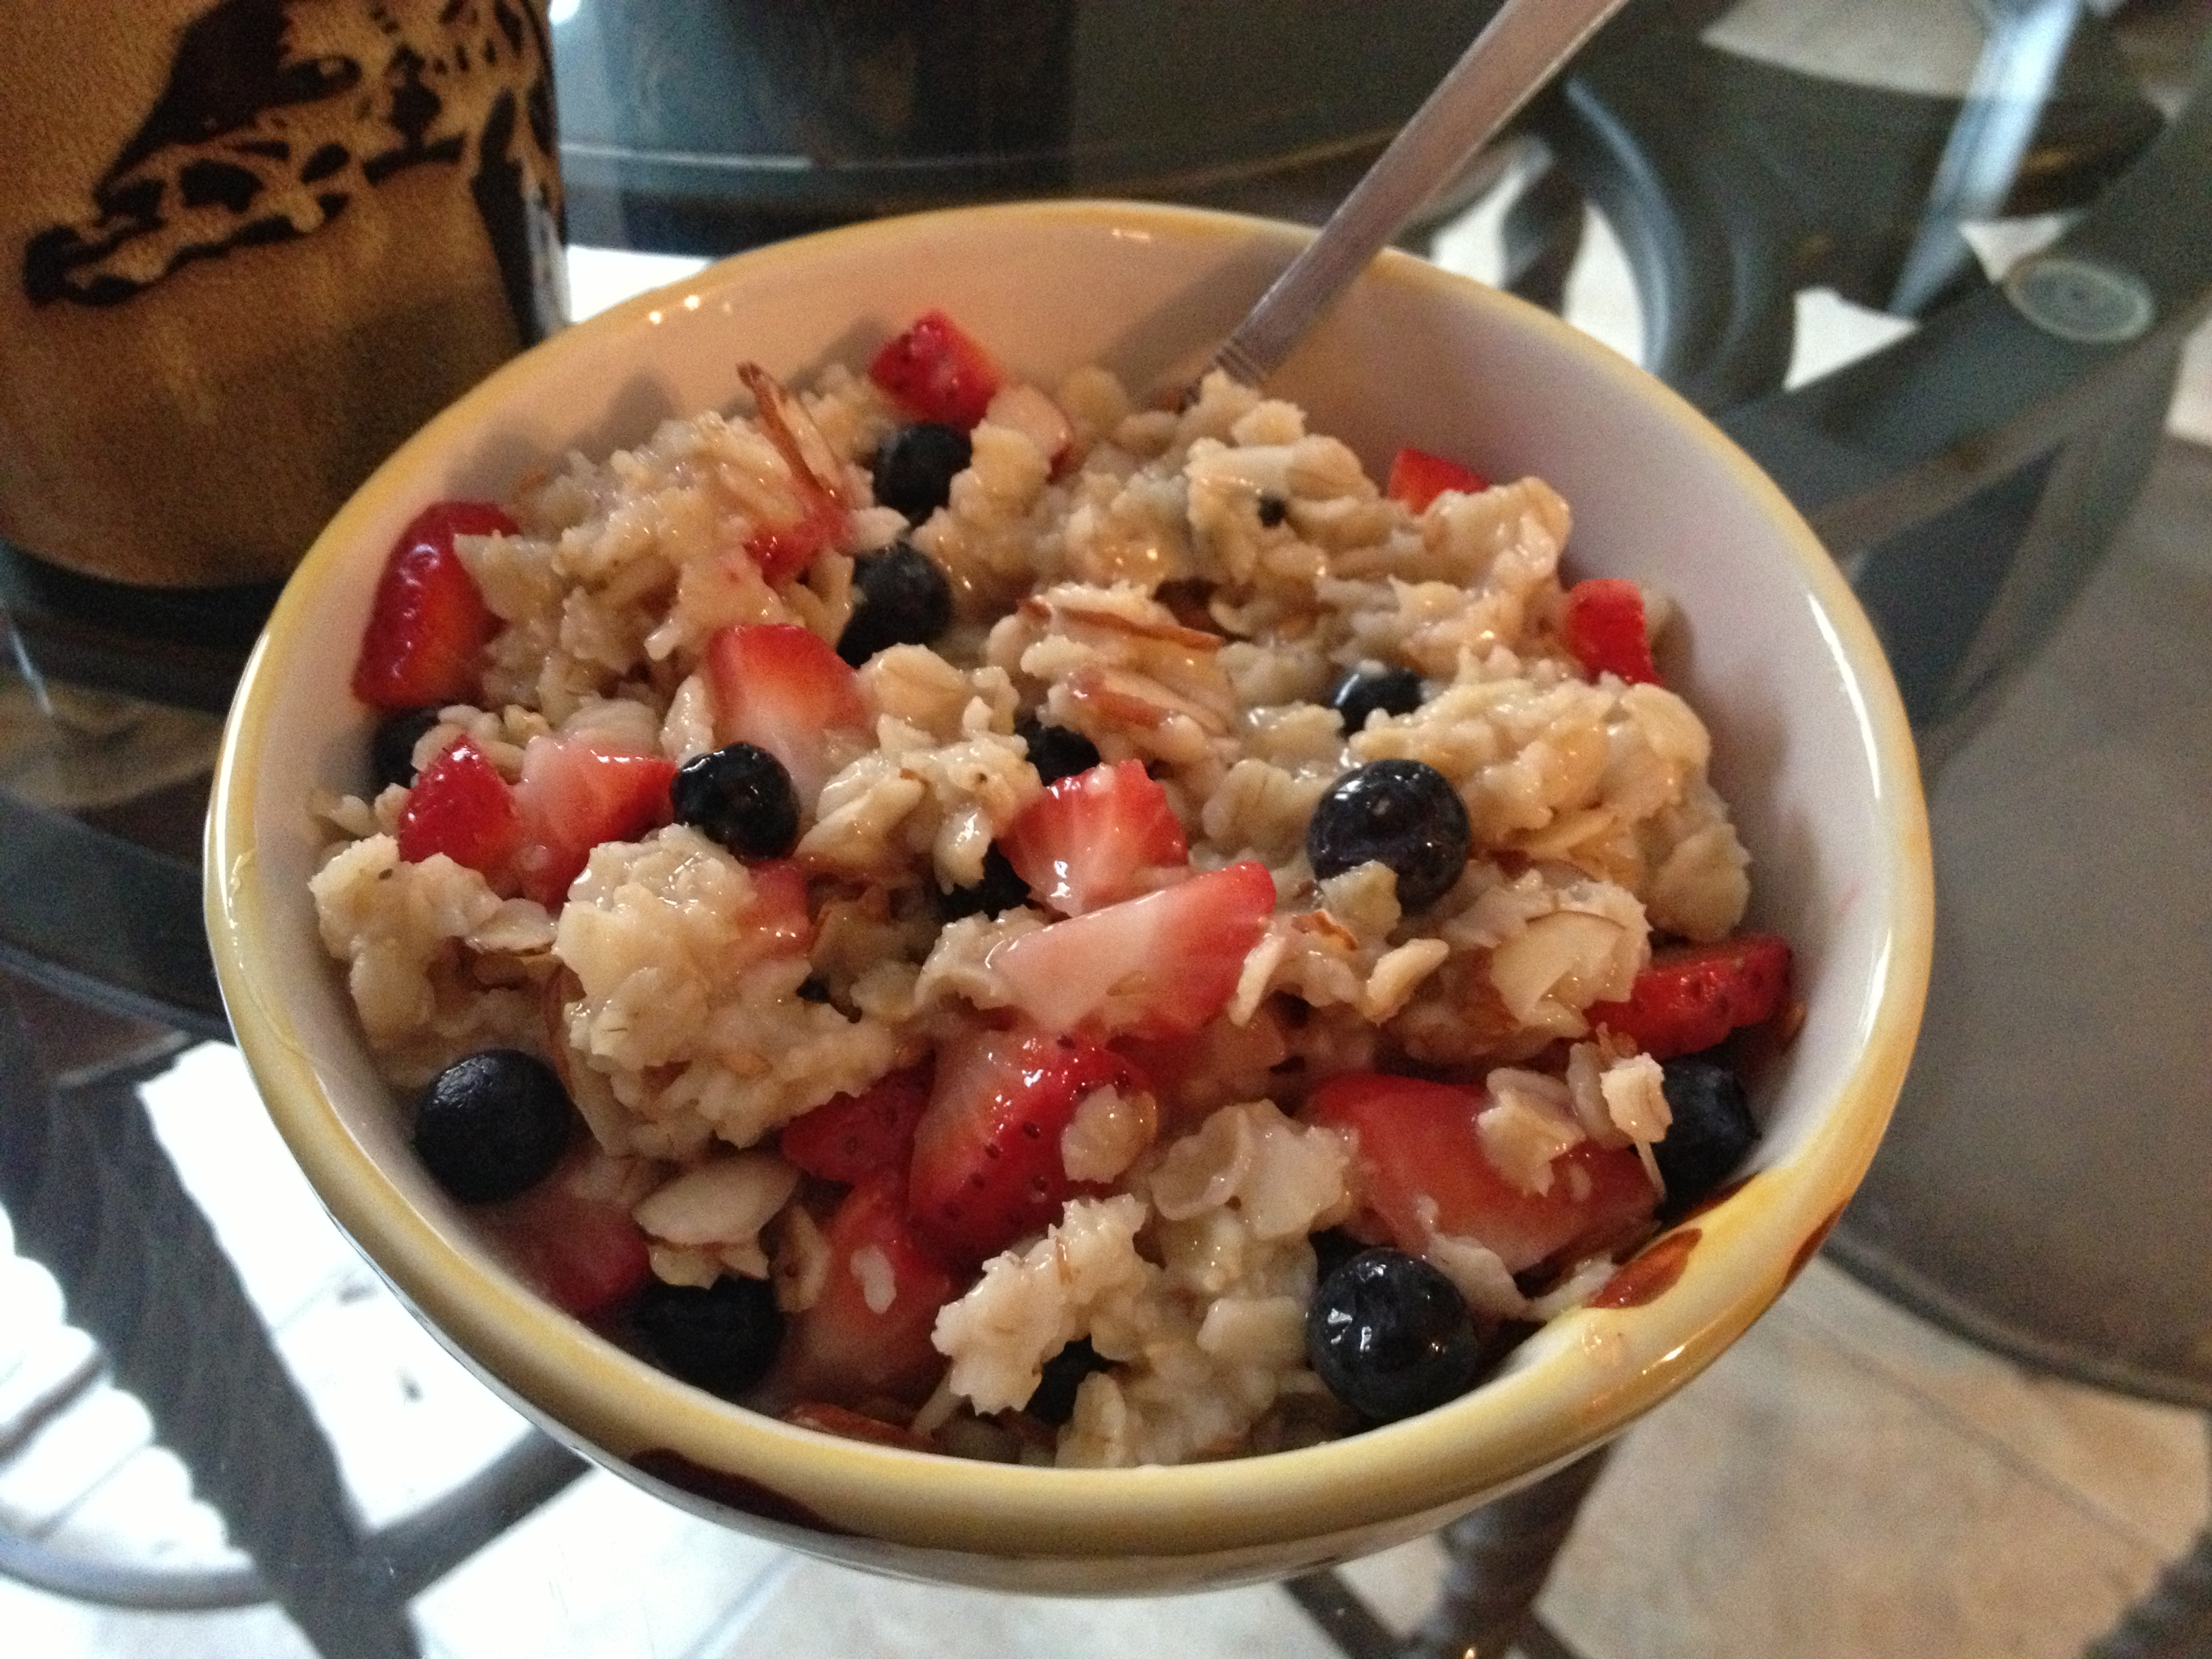 Real Mixed Berry Oatmeal